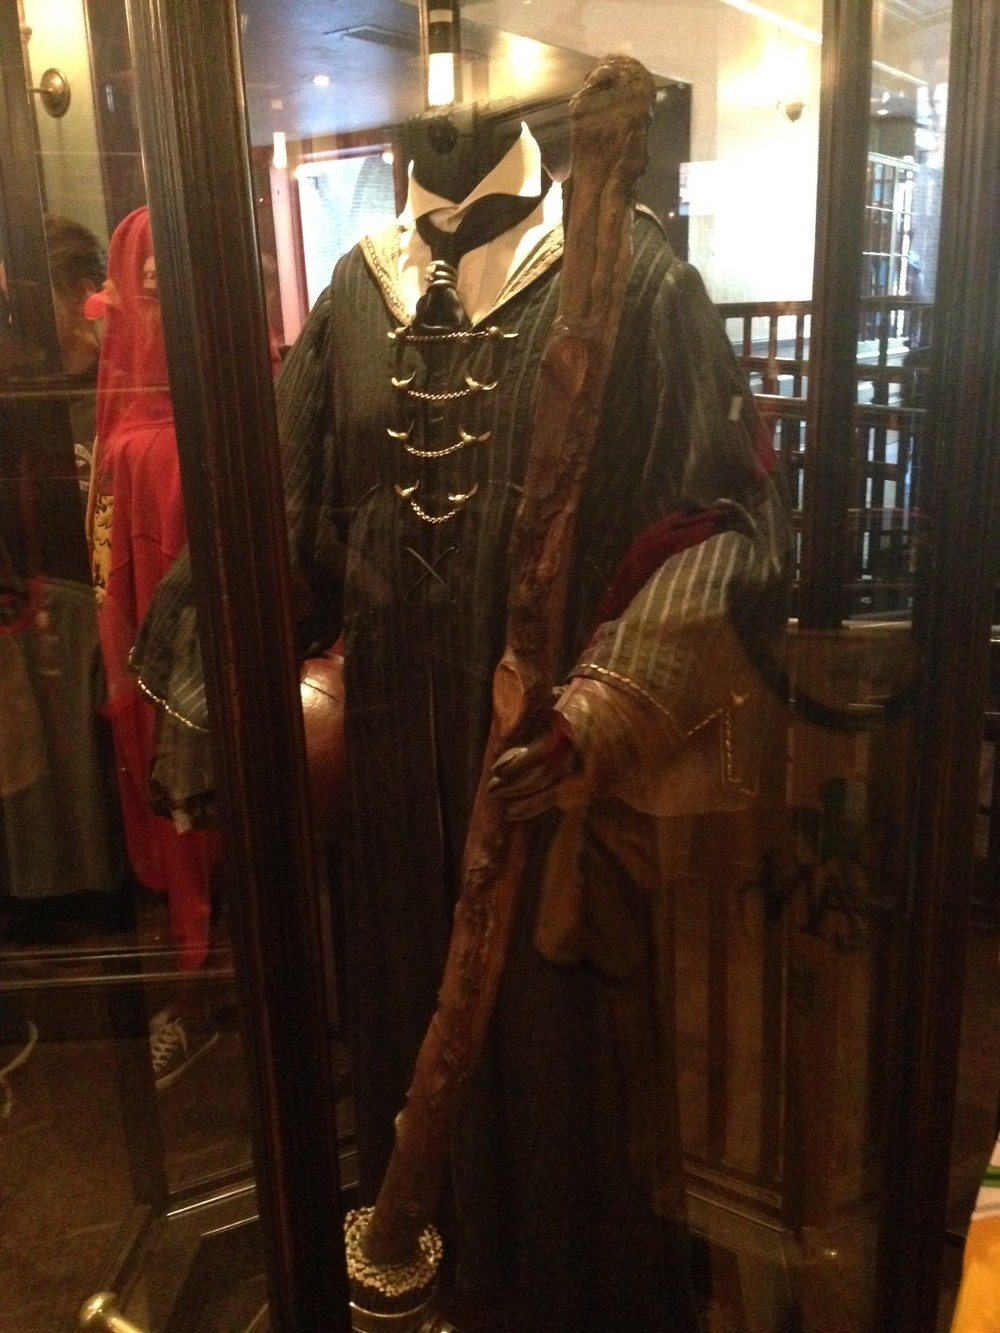 Harry Potter Costume from the Expo in Universal Orlando.